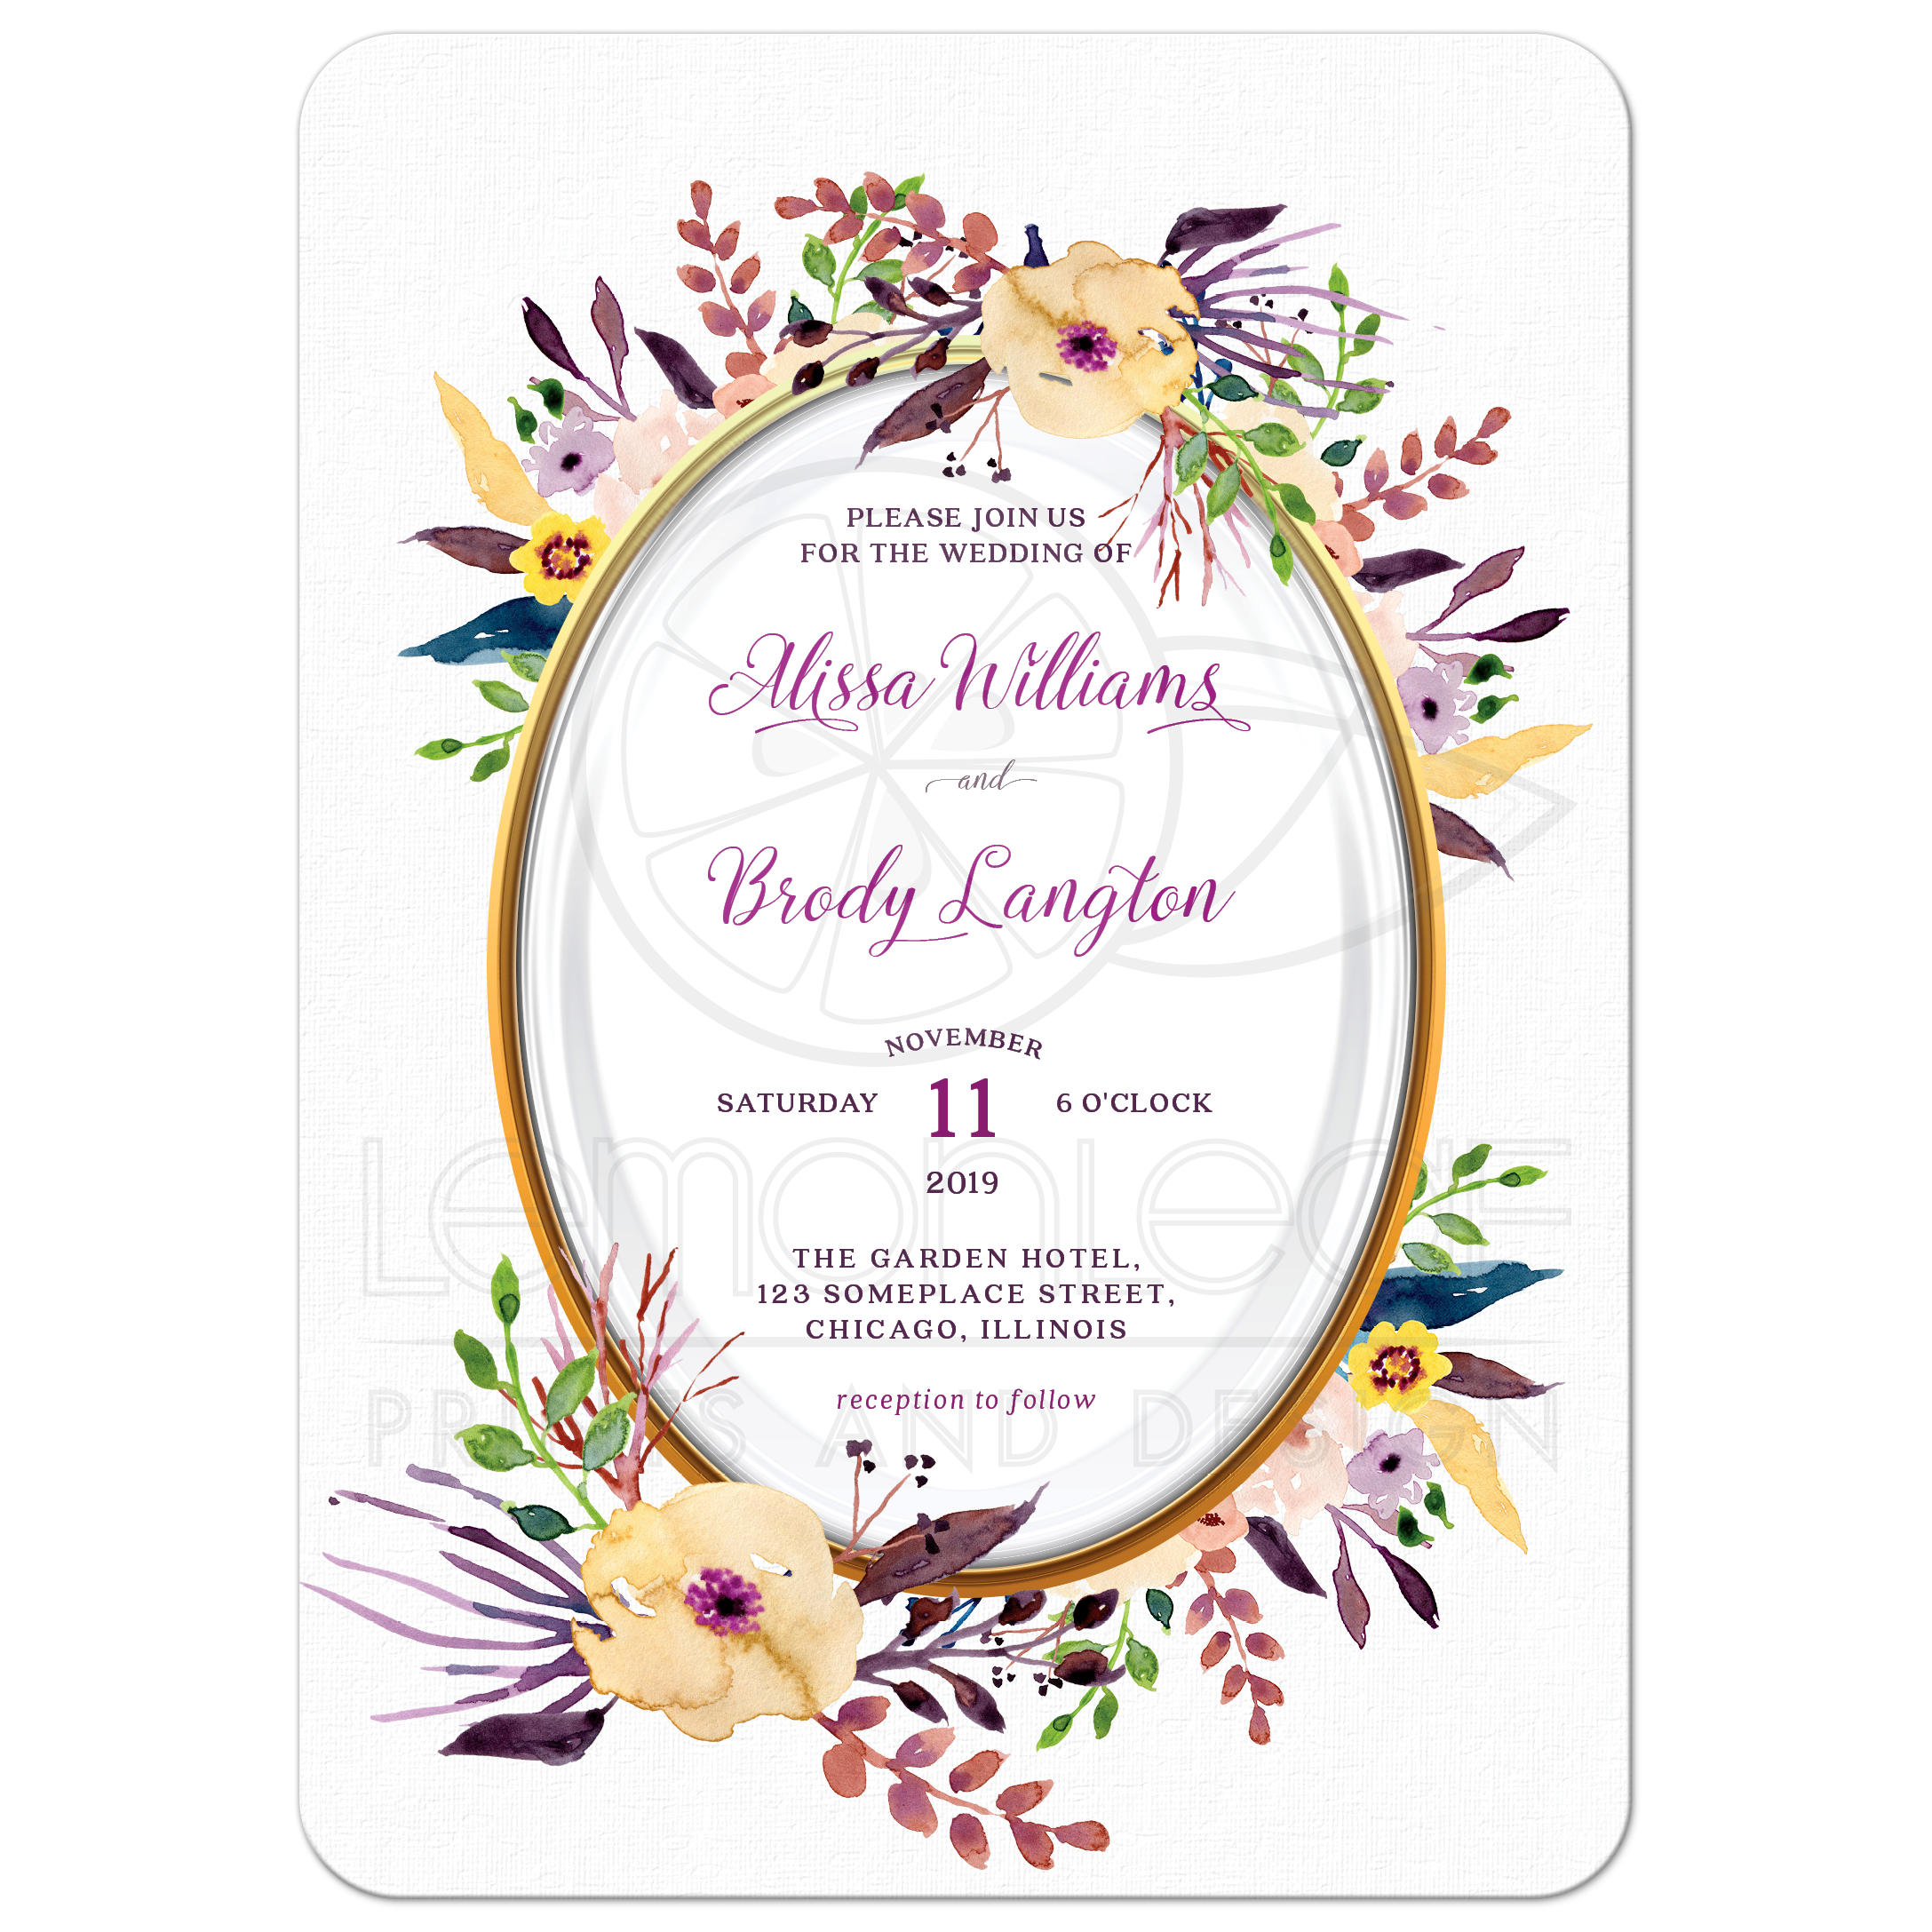 Wedding Invite Borders: Oval Watercolor Flower Border Wedding Invitation